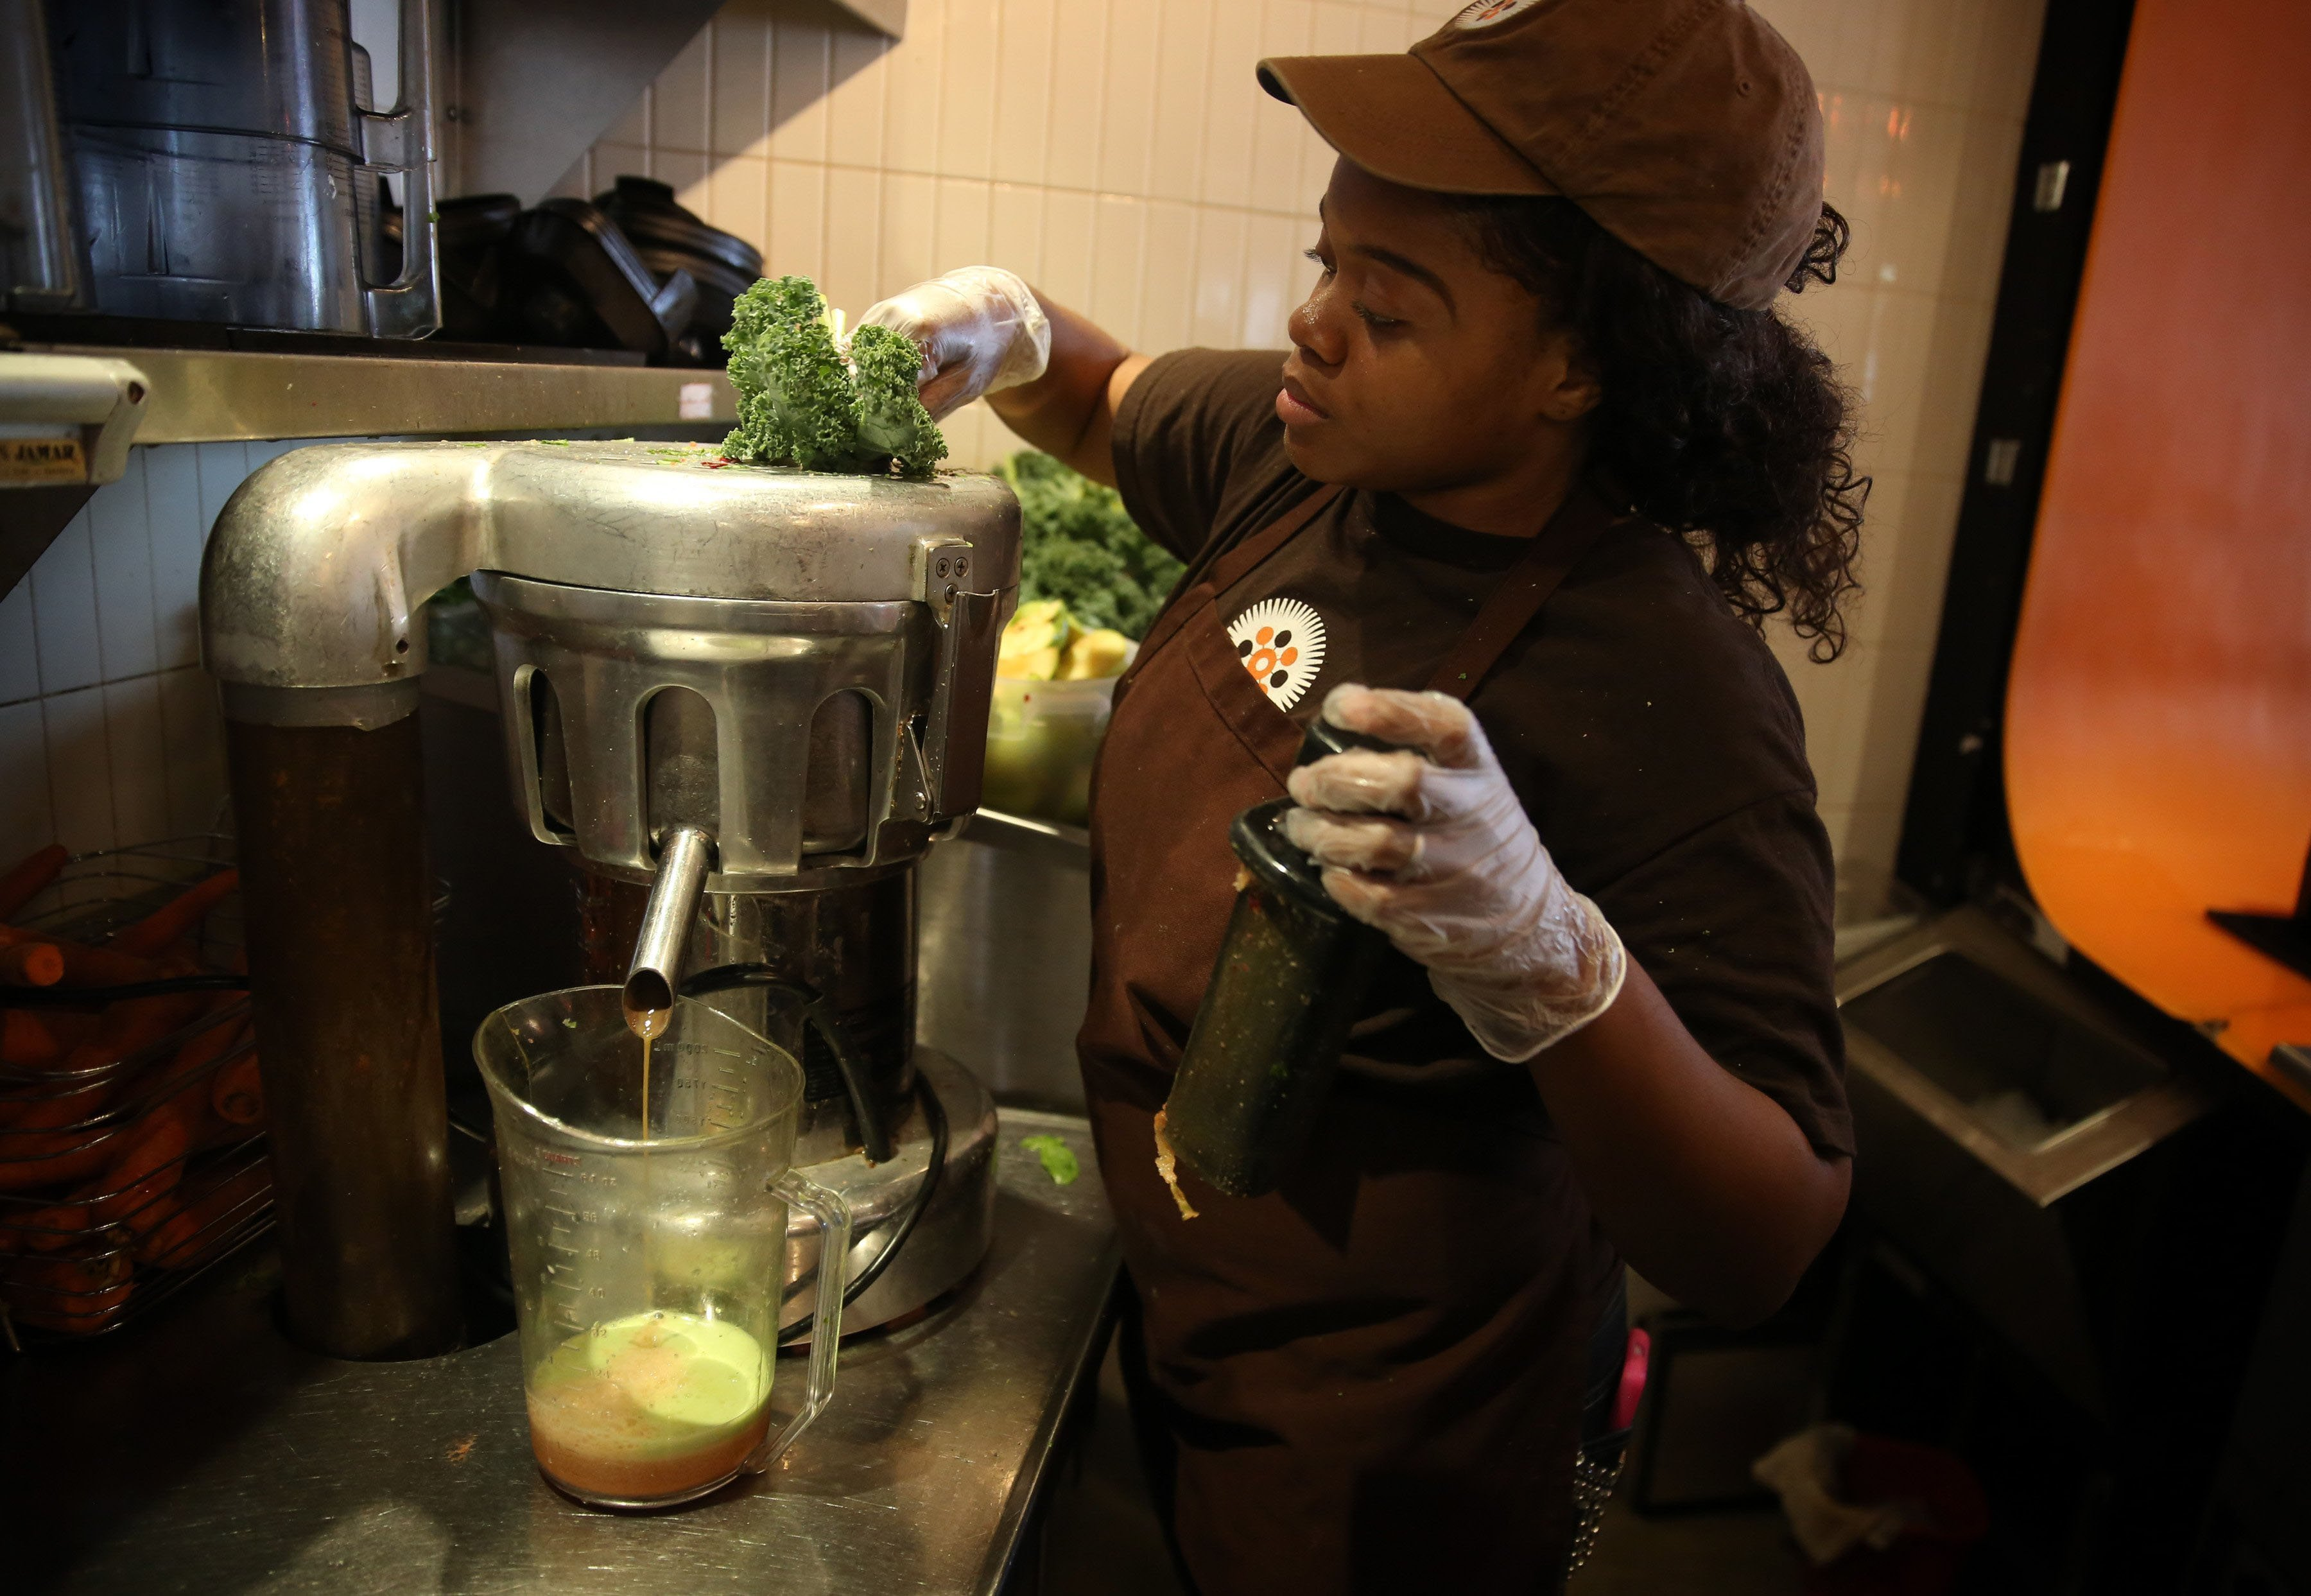 Newsela | Juices and smoothies may not be as healthy as